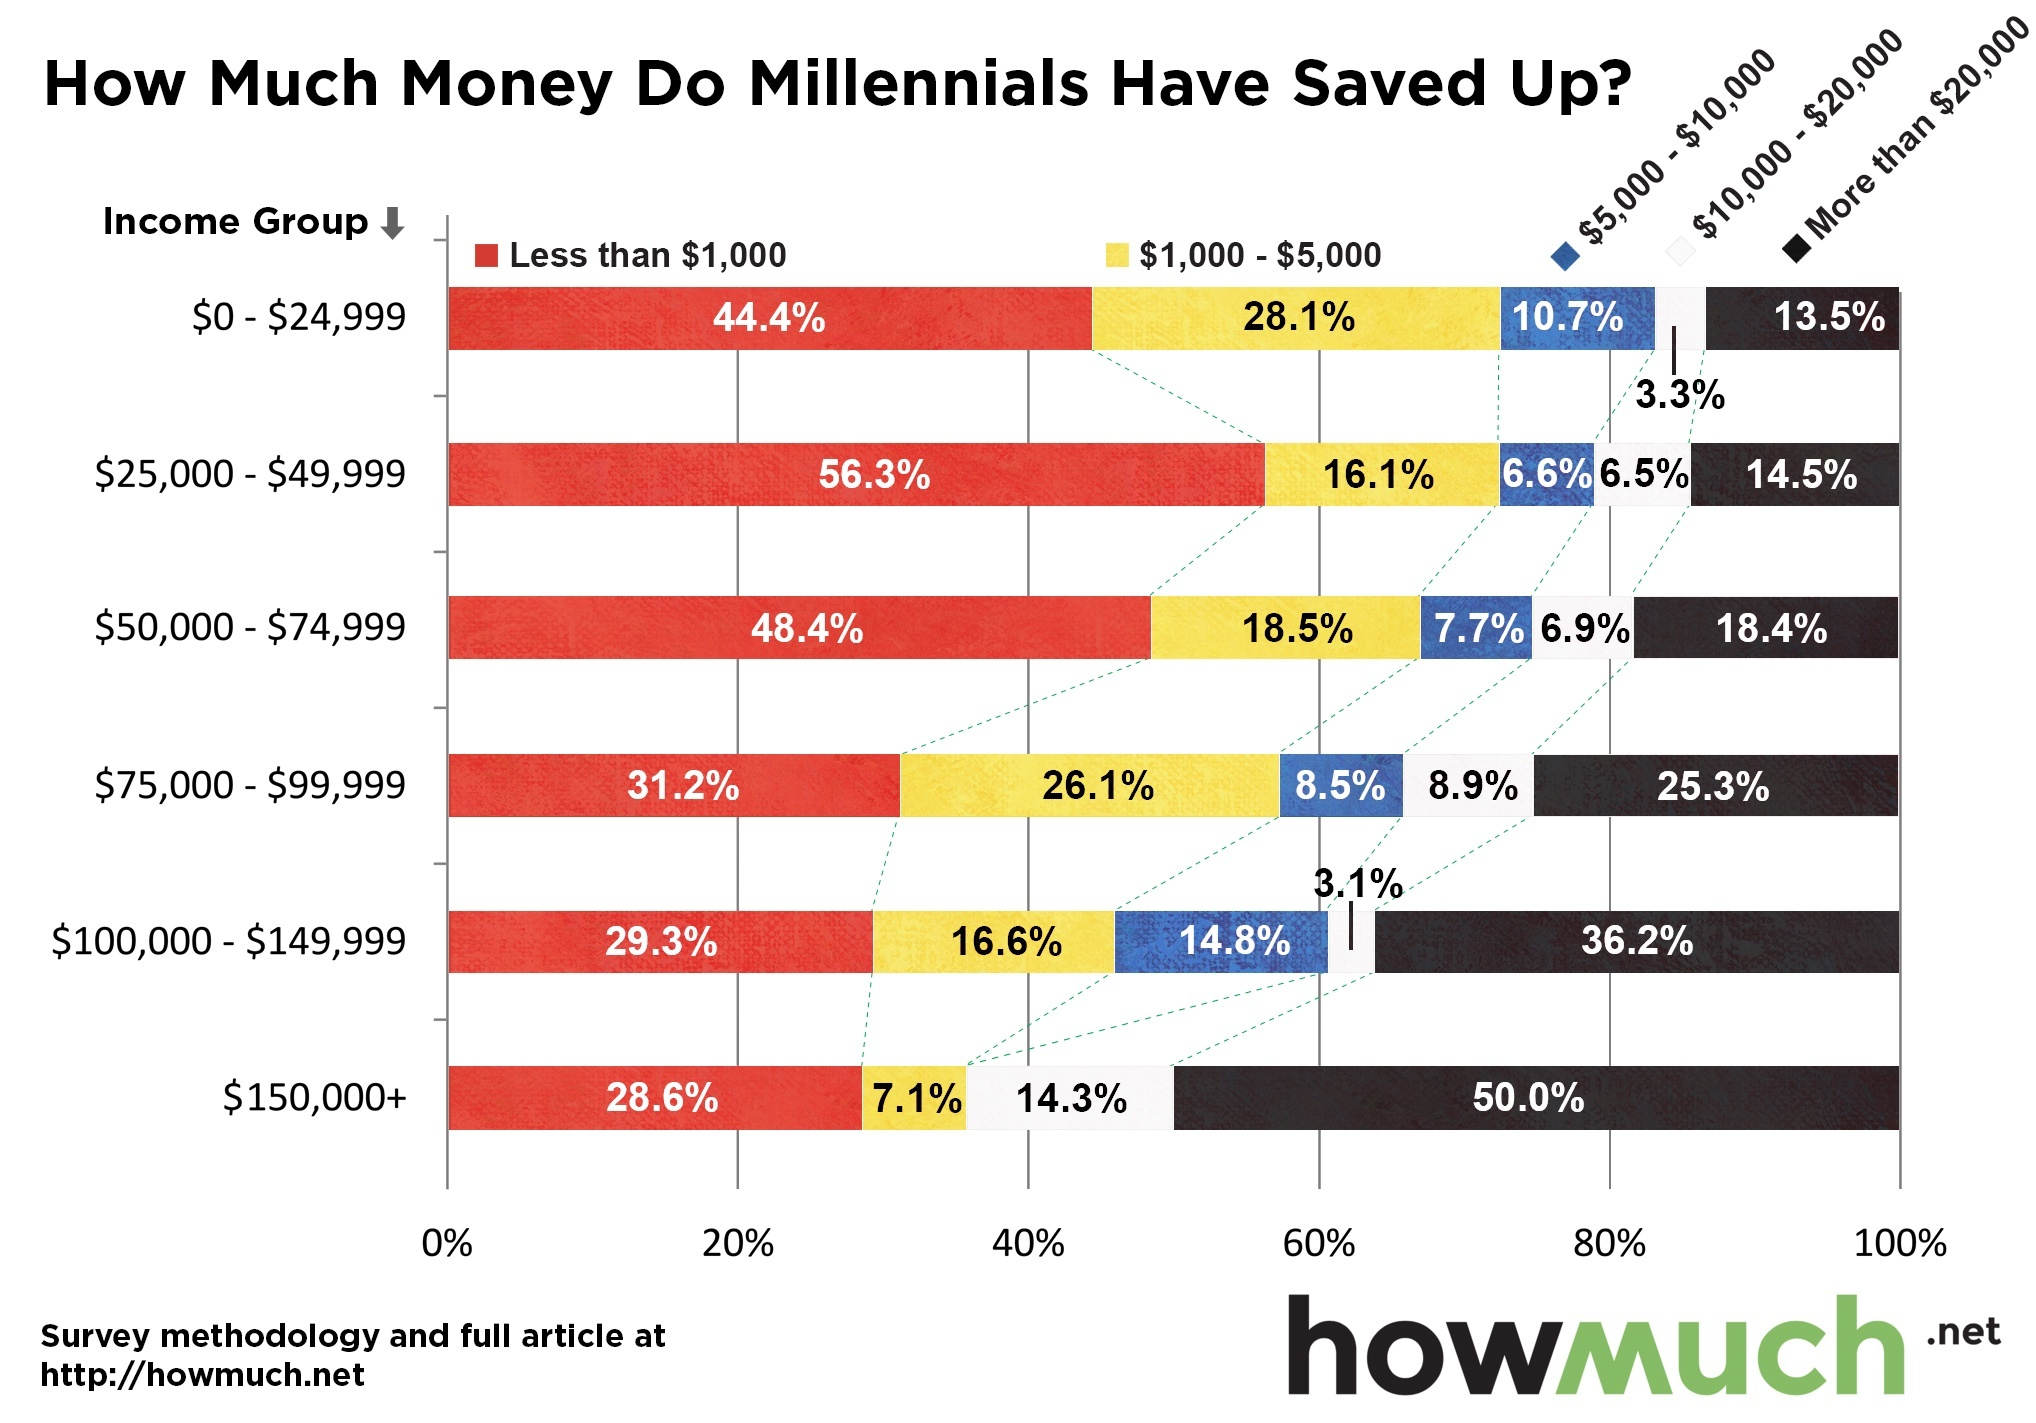 The Majority of Millennials Have $1,000 or Less in Savings